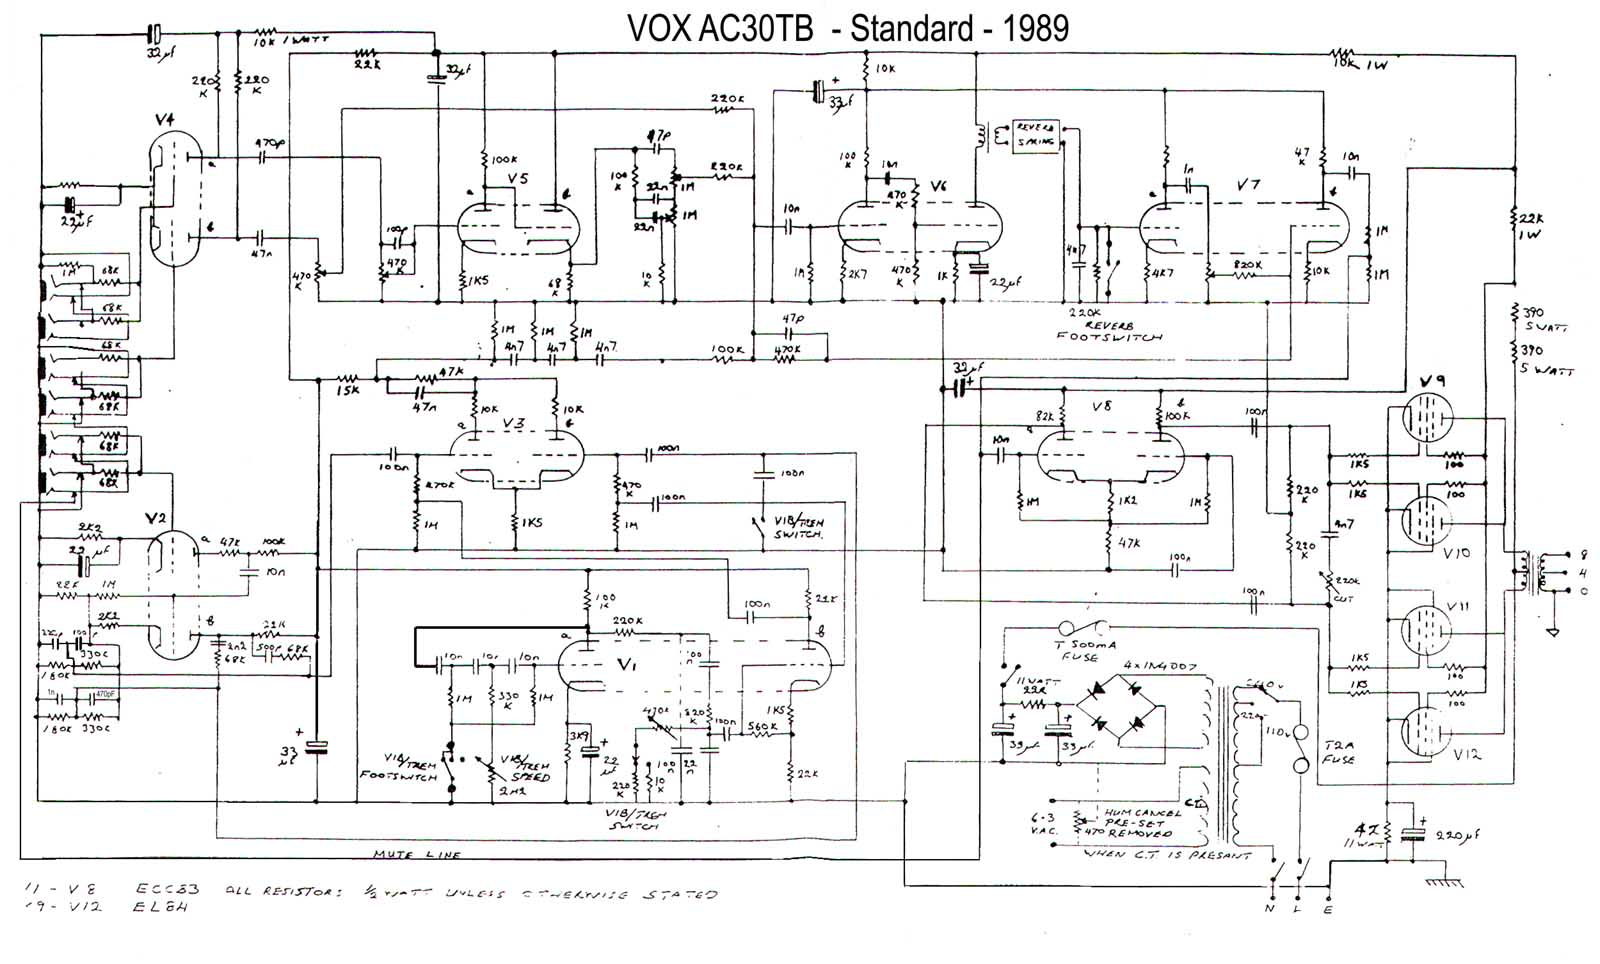 6F8EF 30 Amp Schematic Wiring Diagram | Digital Resources on fender princeton tube amp layout diagrams, fender tele plus wiring, fender telecaster three-way diagram, fender champ wiring, fender bass amps, fender 5 string bass, jazz bass control assembly diagrams, fender p bass electronics diagram, fender wiring schematic 2 pickups 1 volume 2 tone 5-way switch, fender s1 switch wiring, fender floyd rose, fender 5-way switch diagram, fender stratocaster wiring, fender esquire wiring, jaguar electrical diagrams,